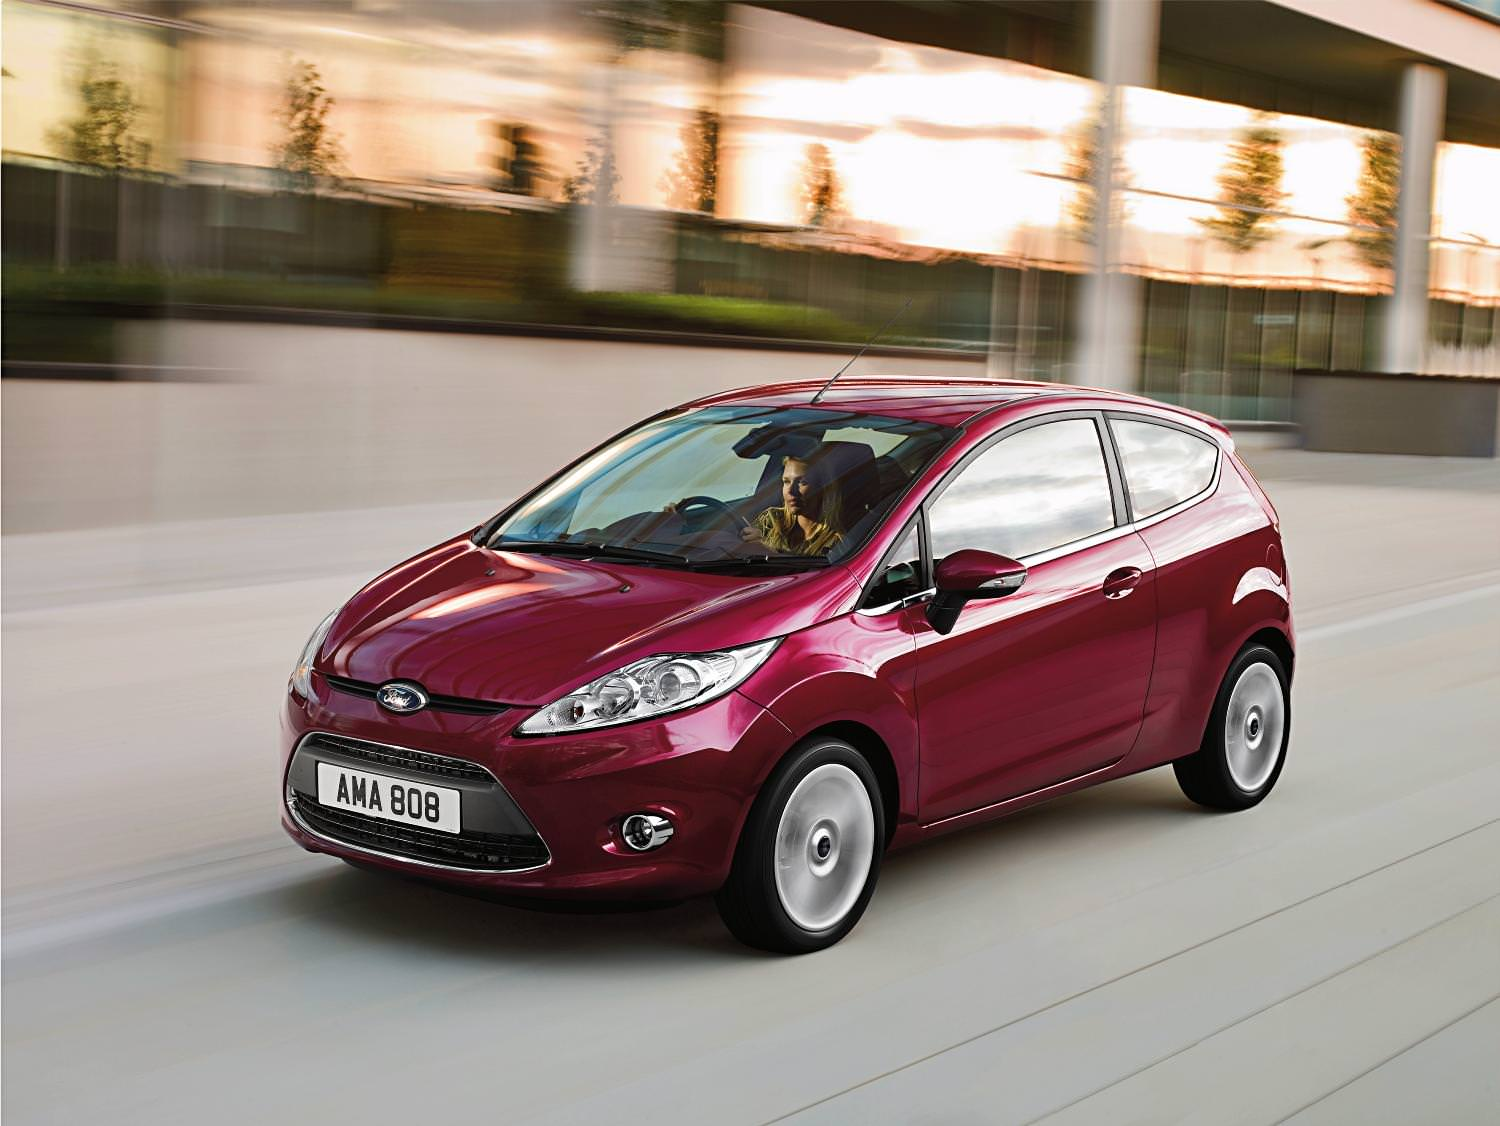 Used Ford Fiesta driving at speed